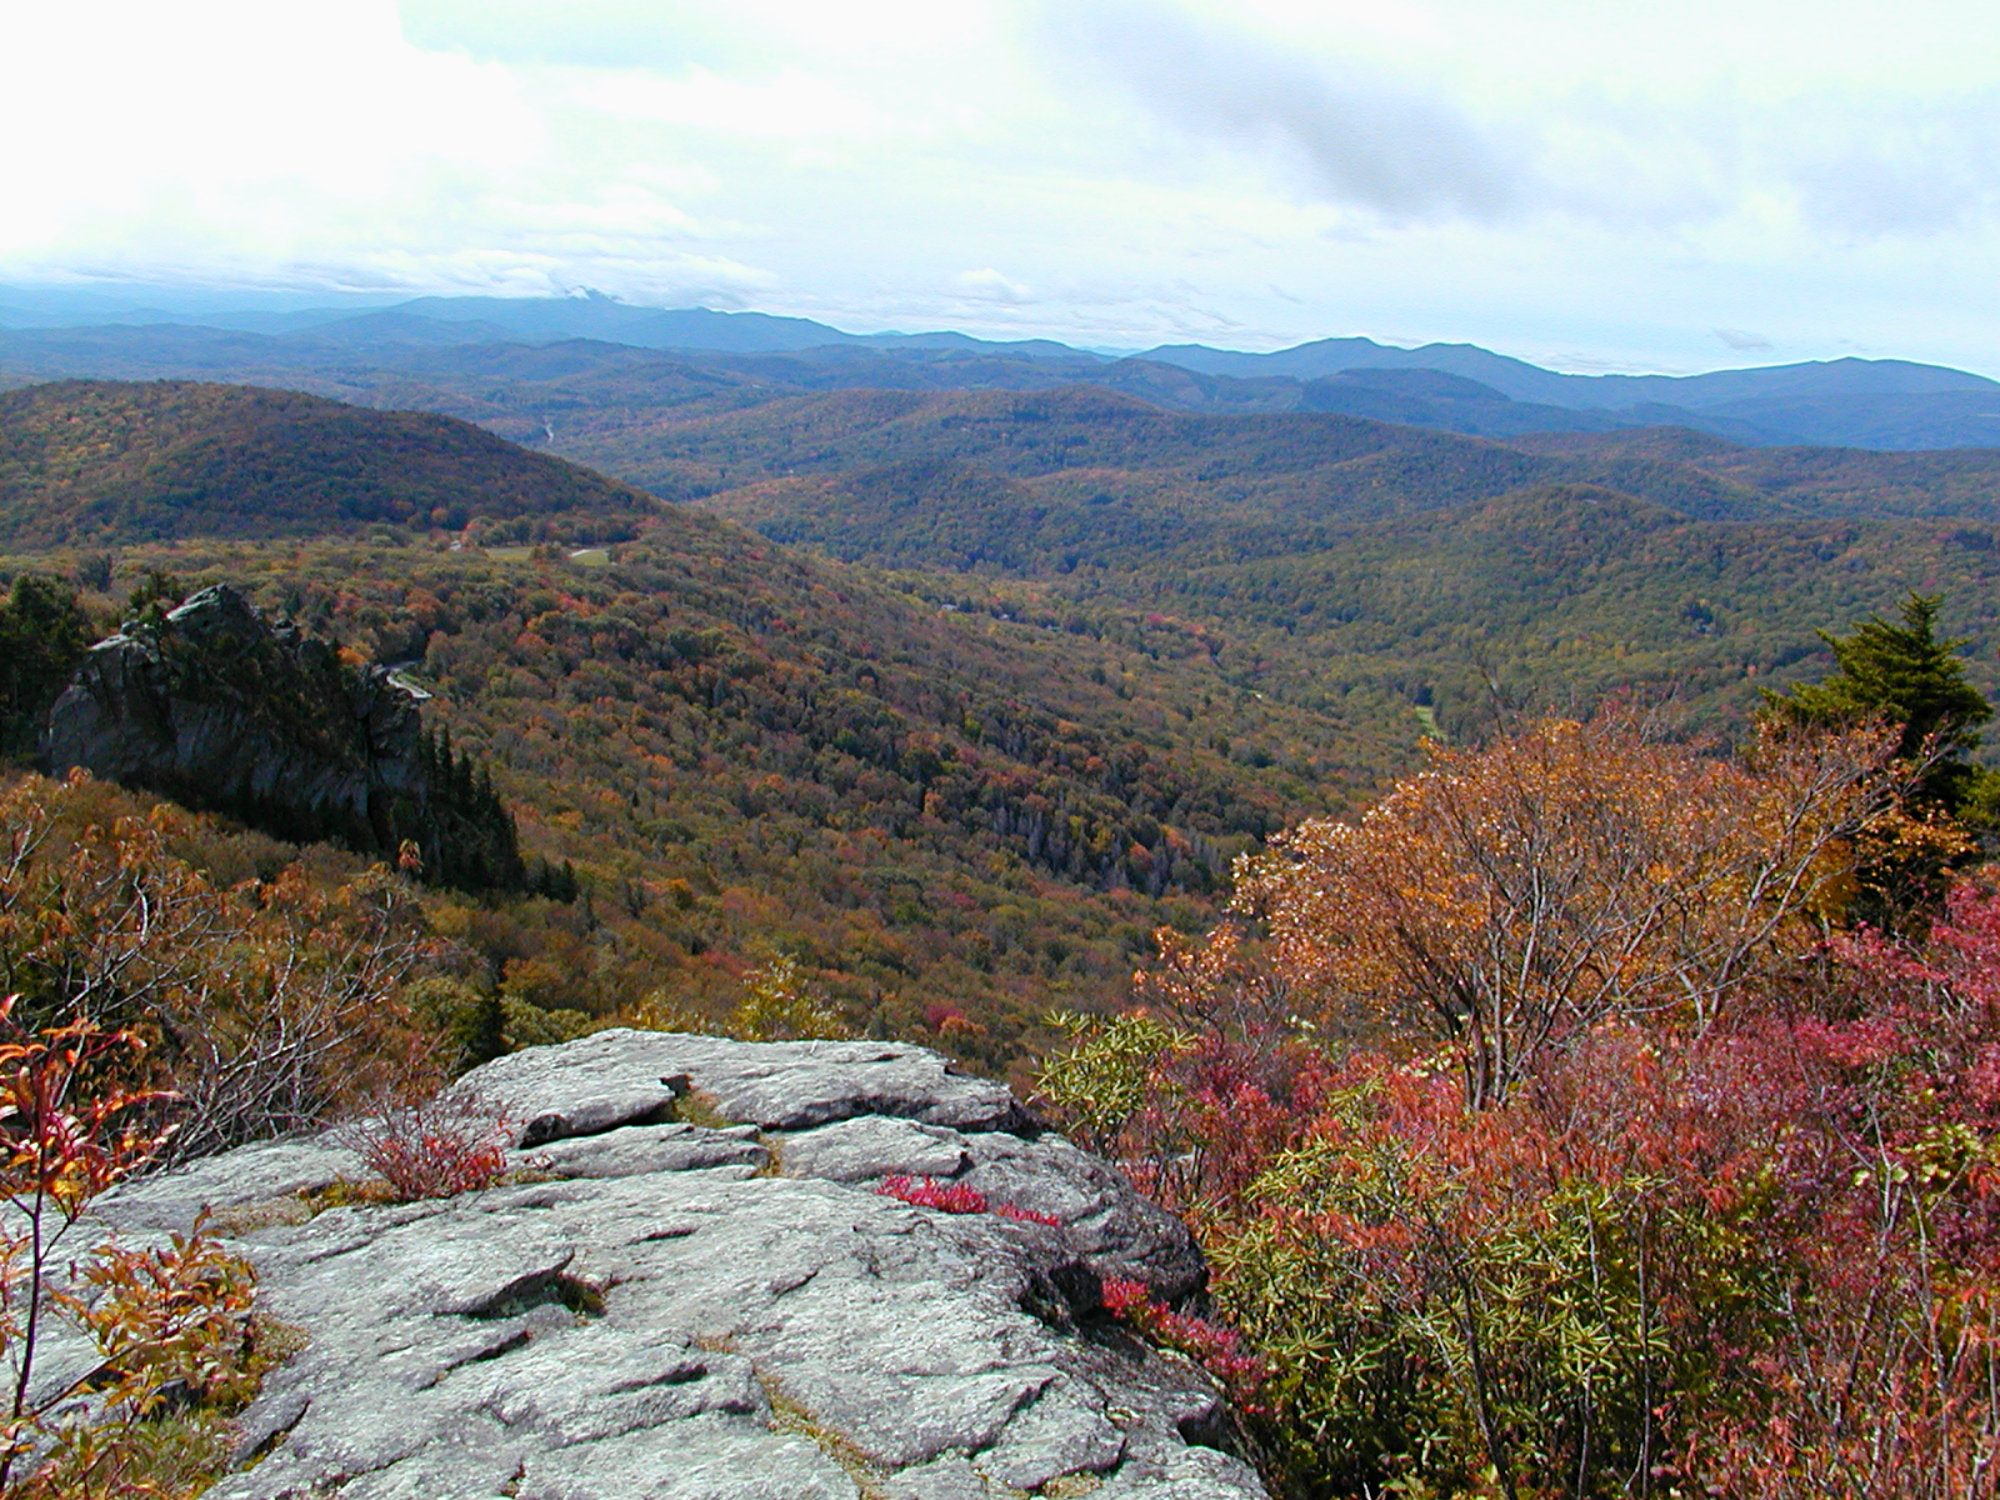 View of tree covered valley and mountains from a rocky ledge